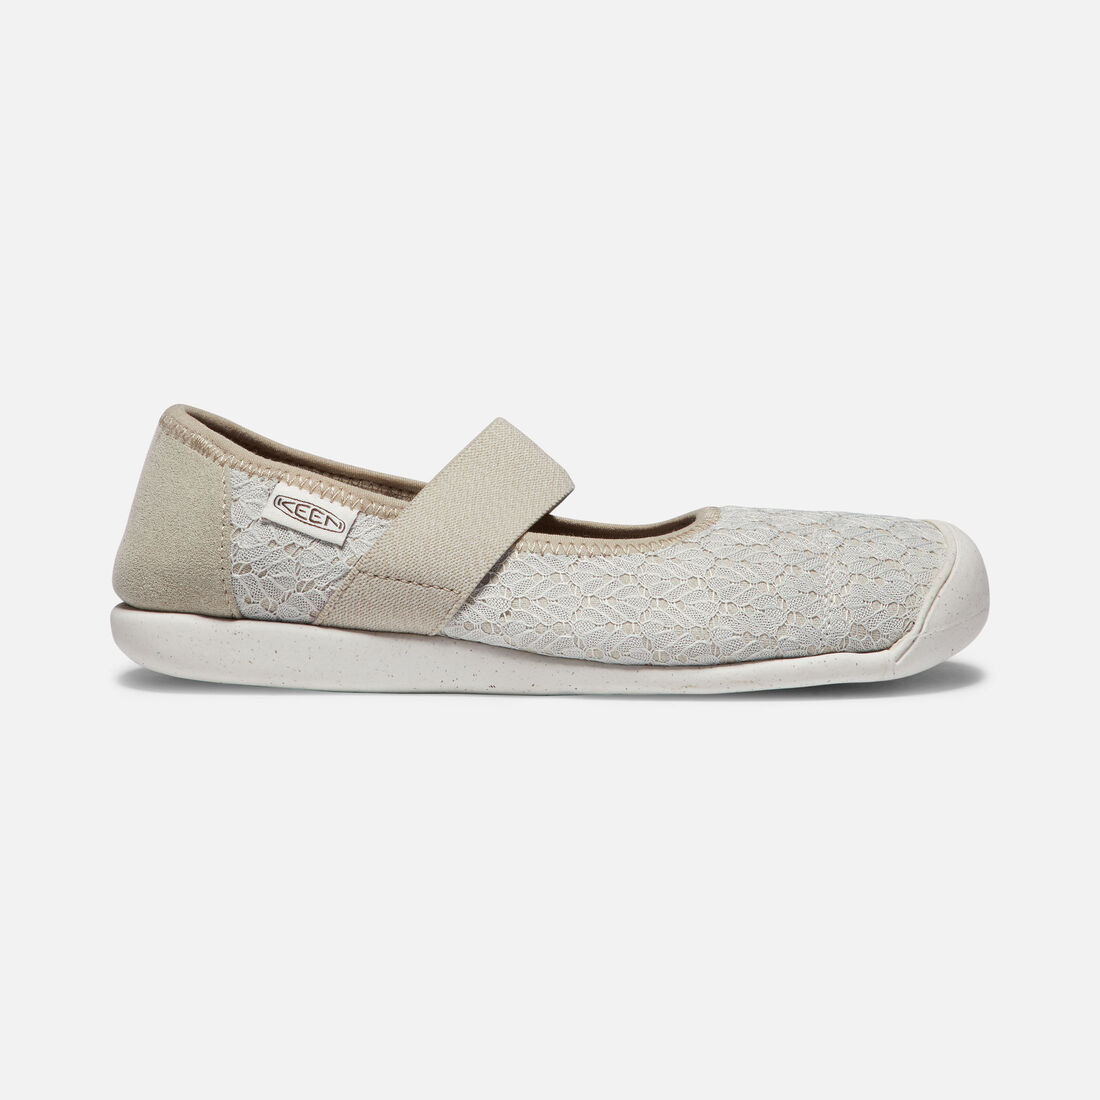 Women's Sienna Canvas Mary Jane in SILVER BIRCH/CANTEEN - large view.